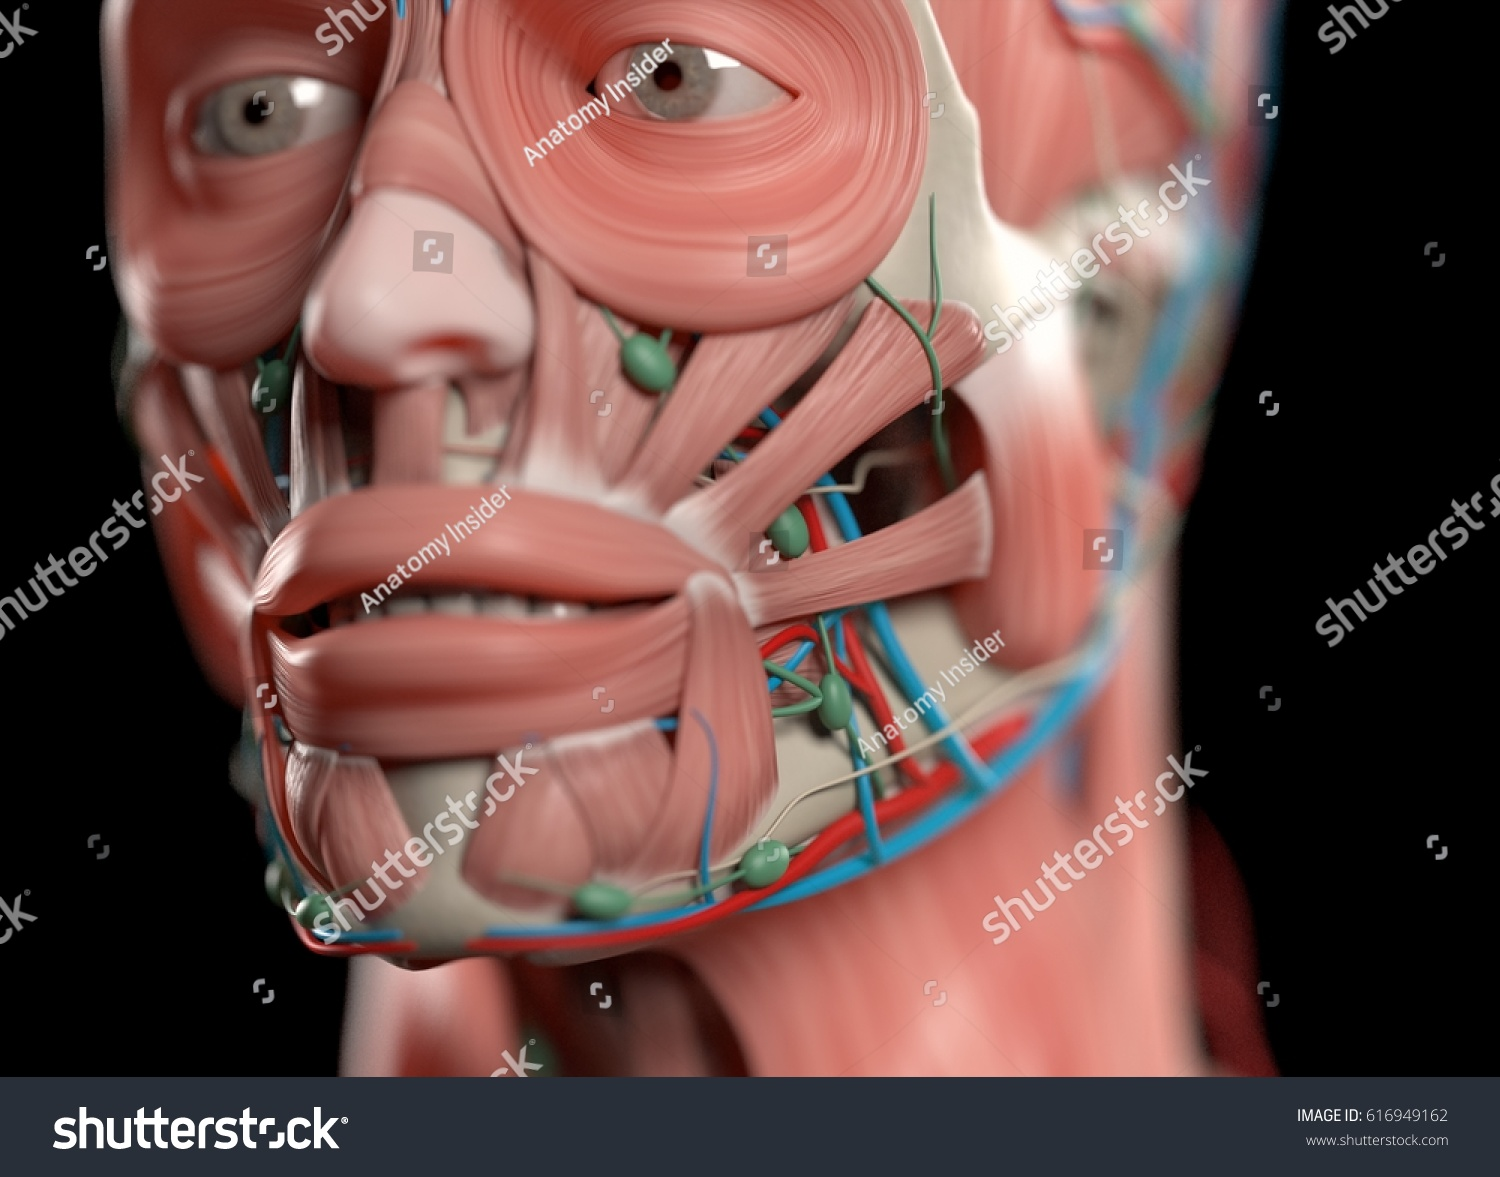 Human Anatomy Face Nose Eyes Lips Muscular Stock Illustration ...